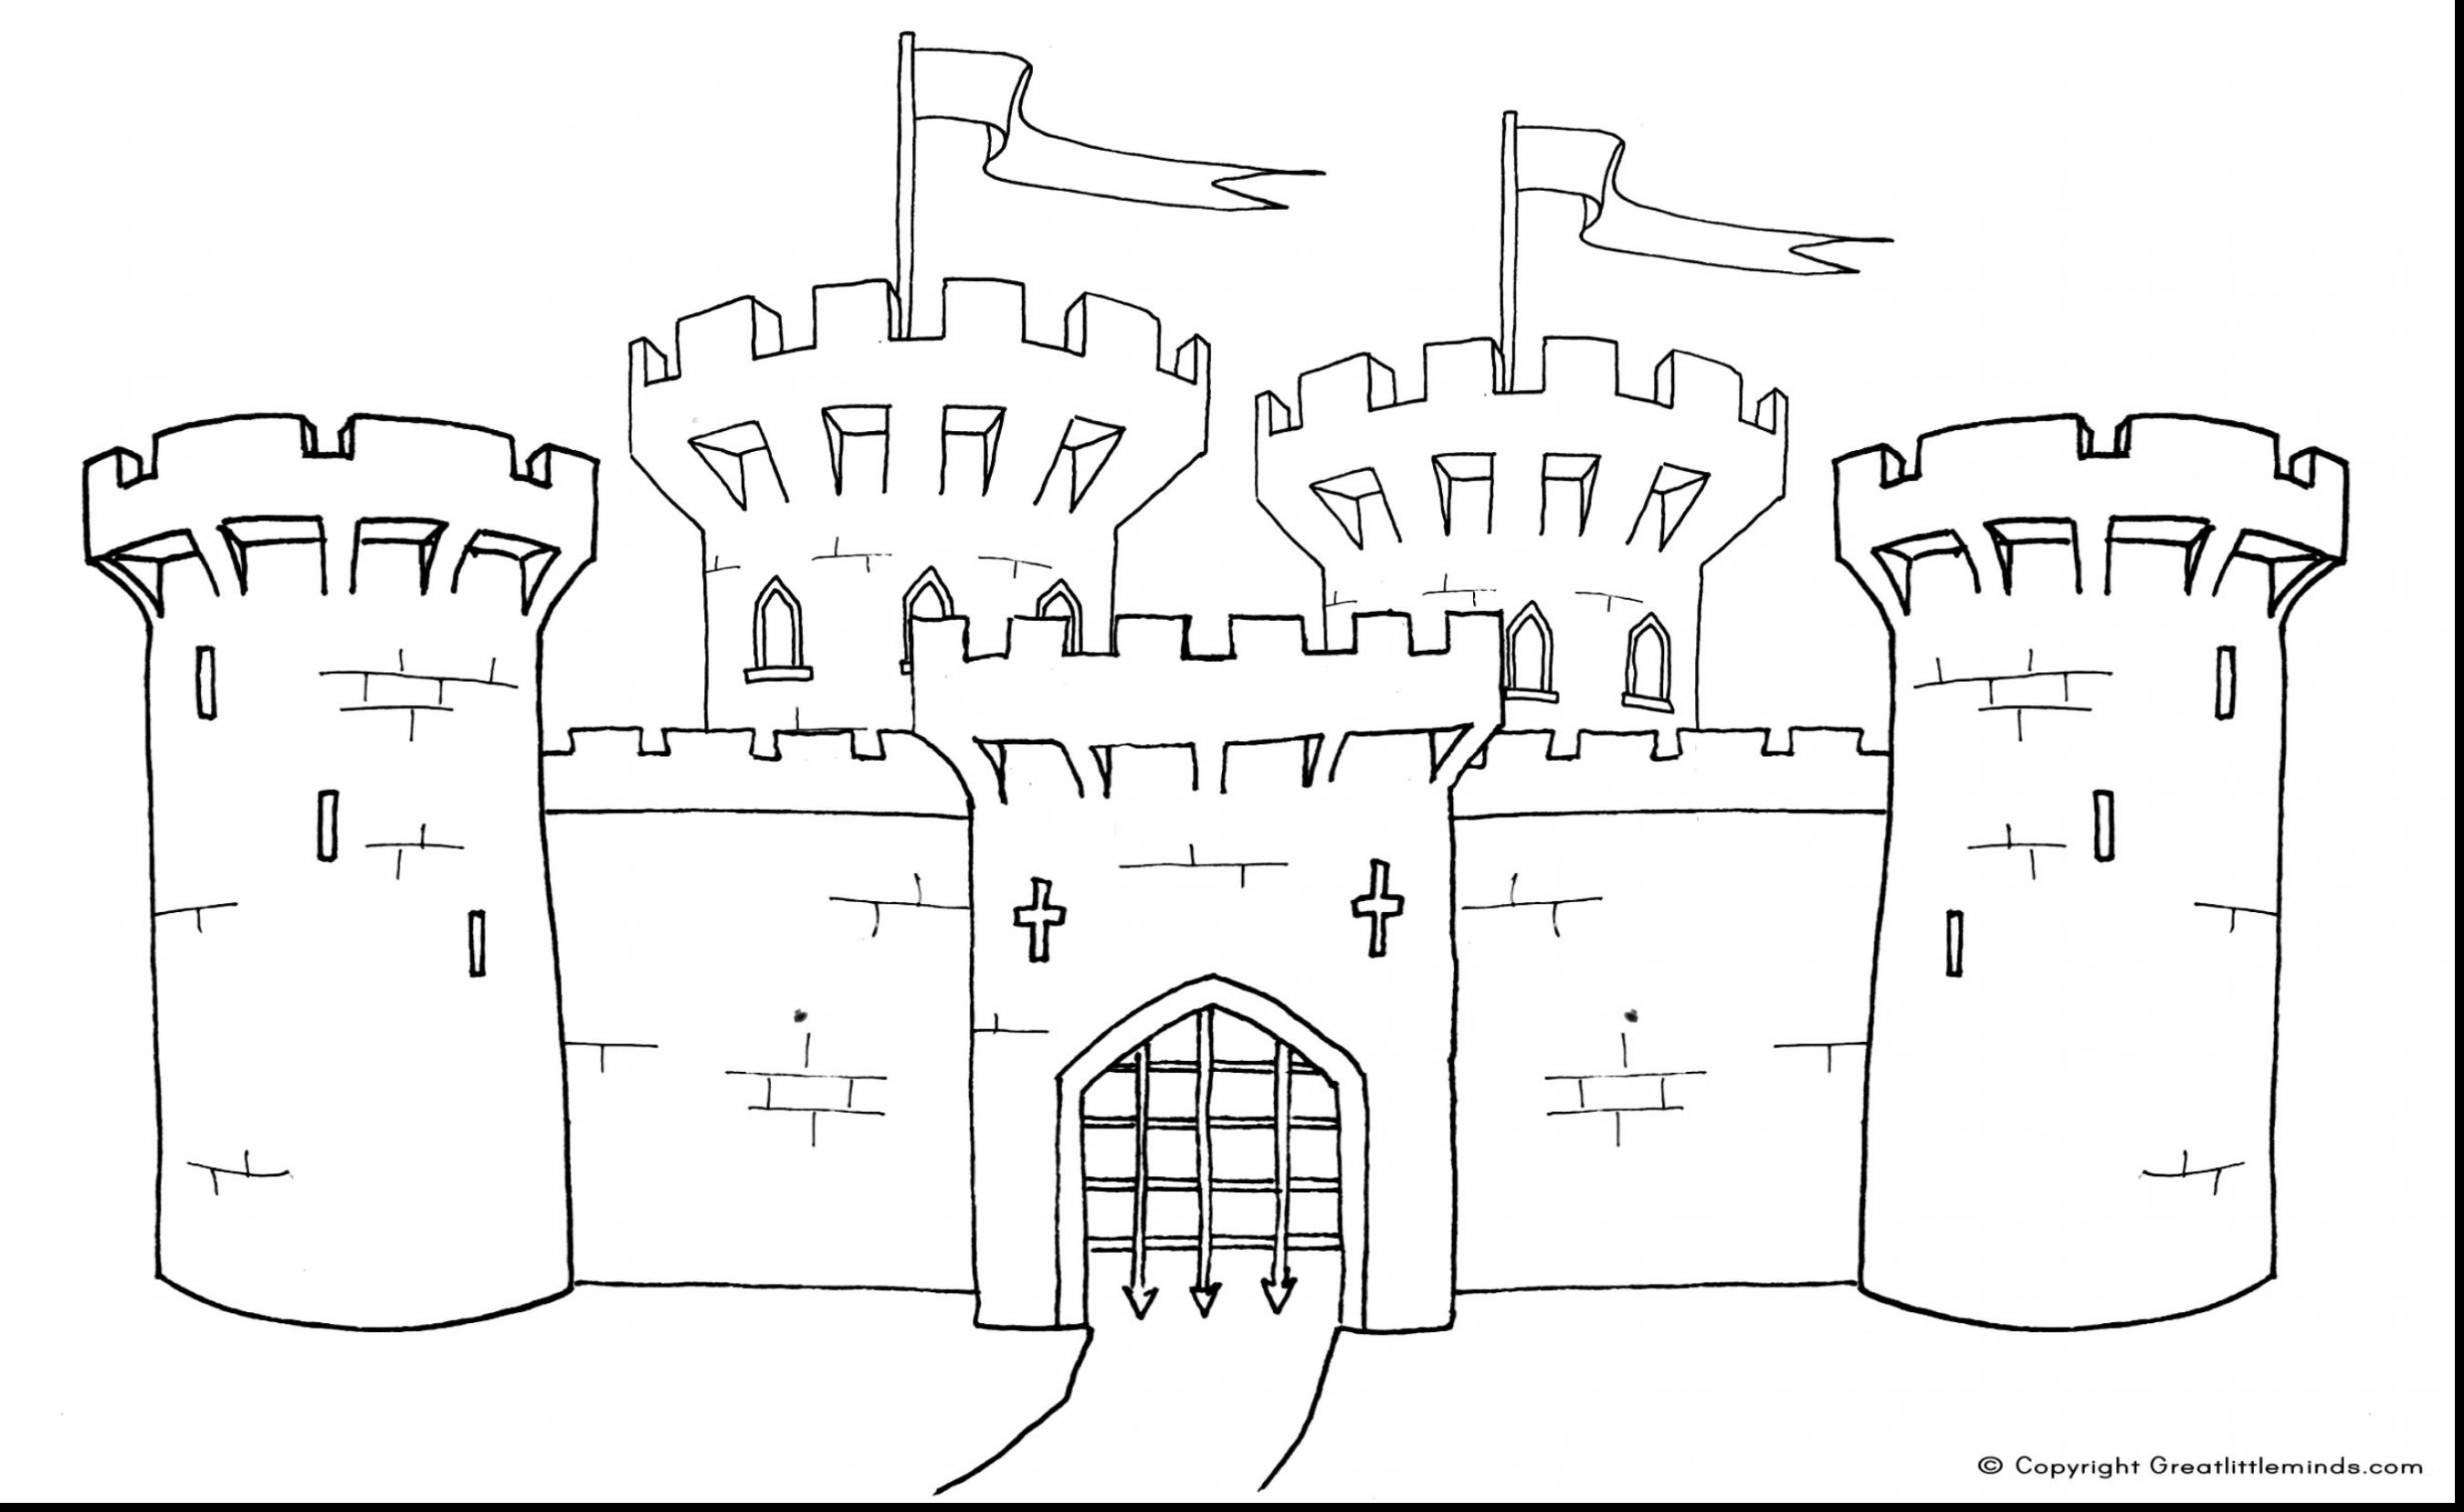 Magnificent Castle coloring #20, Download drawings